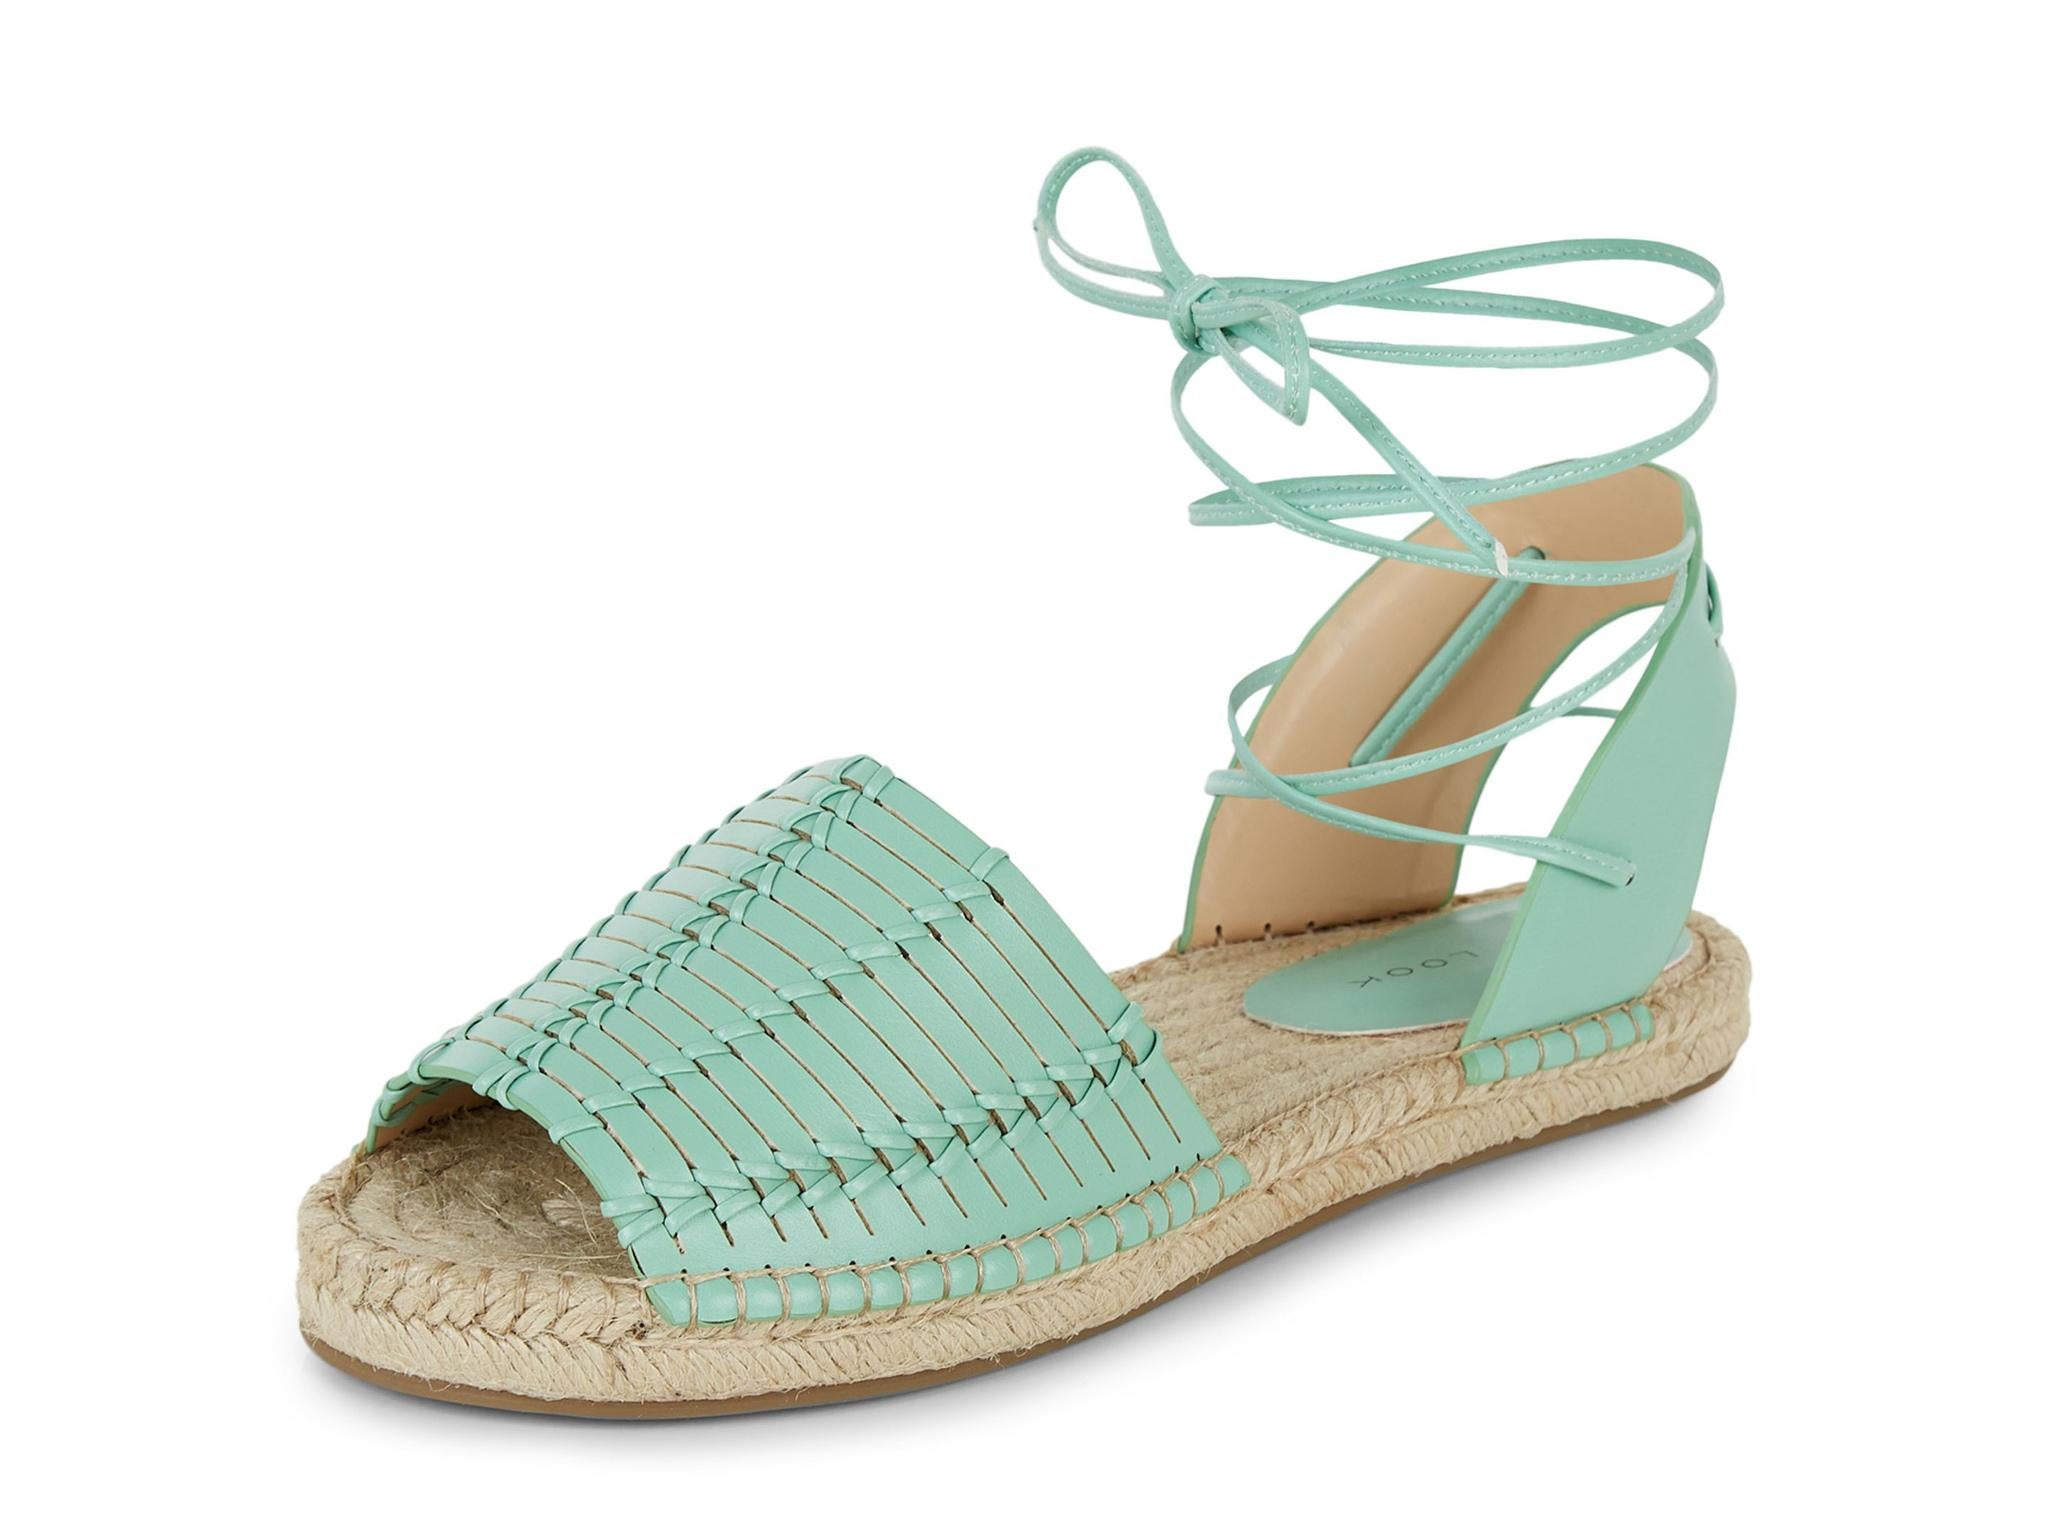 10 Summer Sandals and Bags To Make The Warm Season Hot